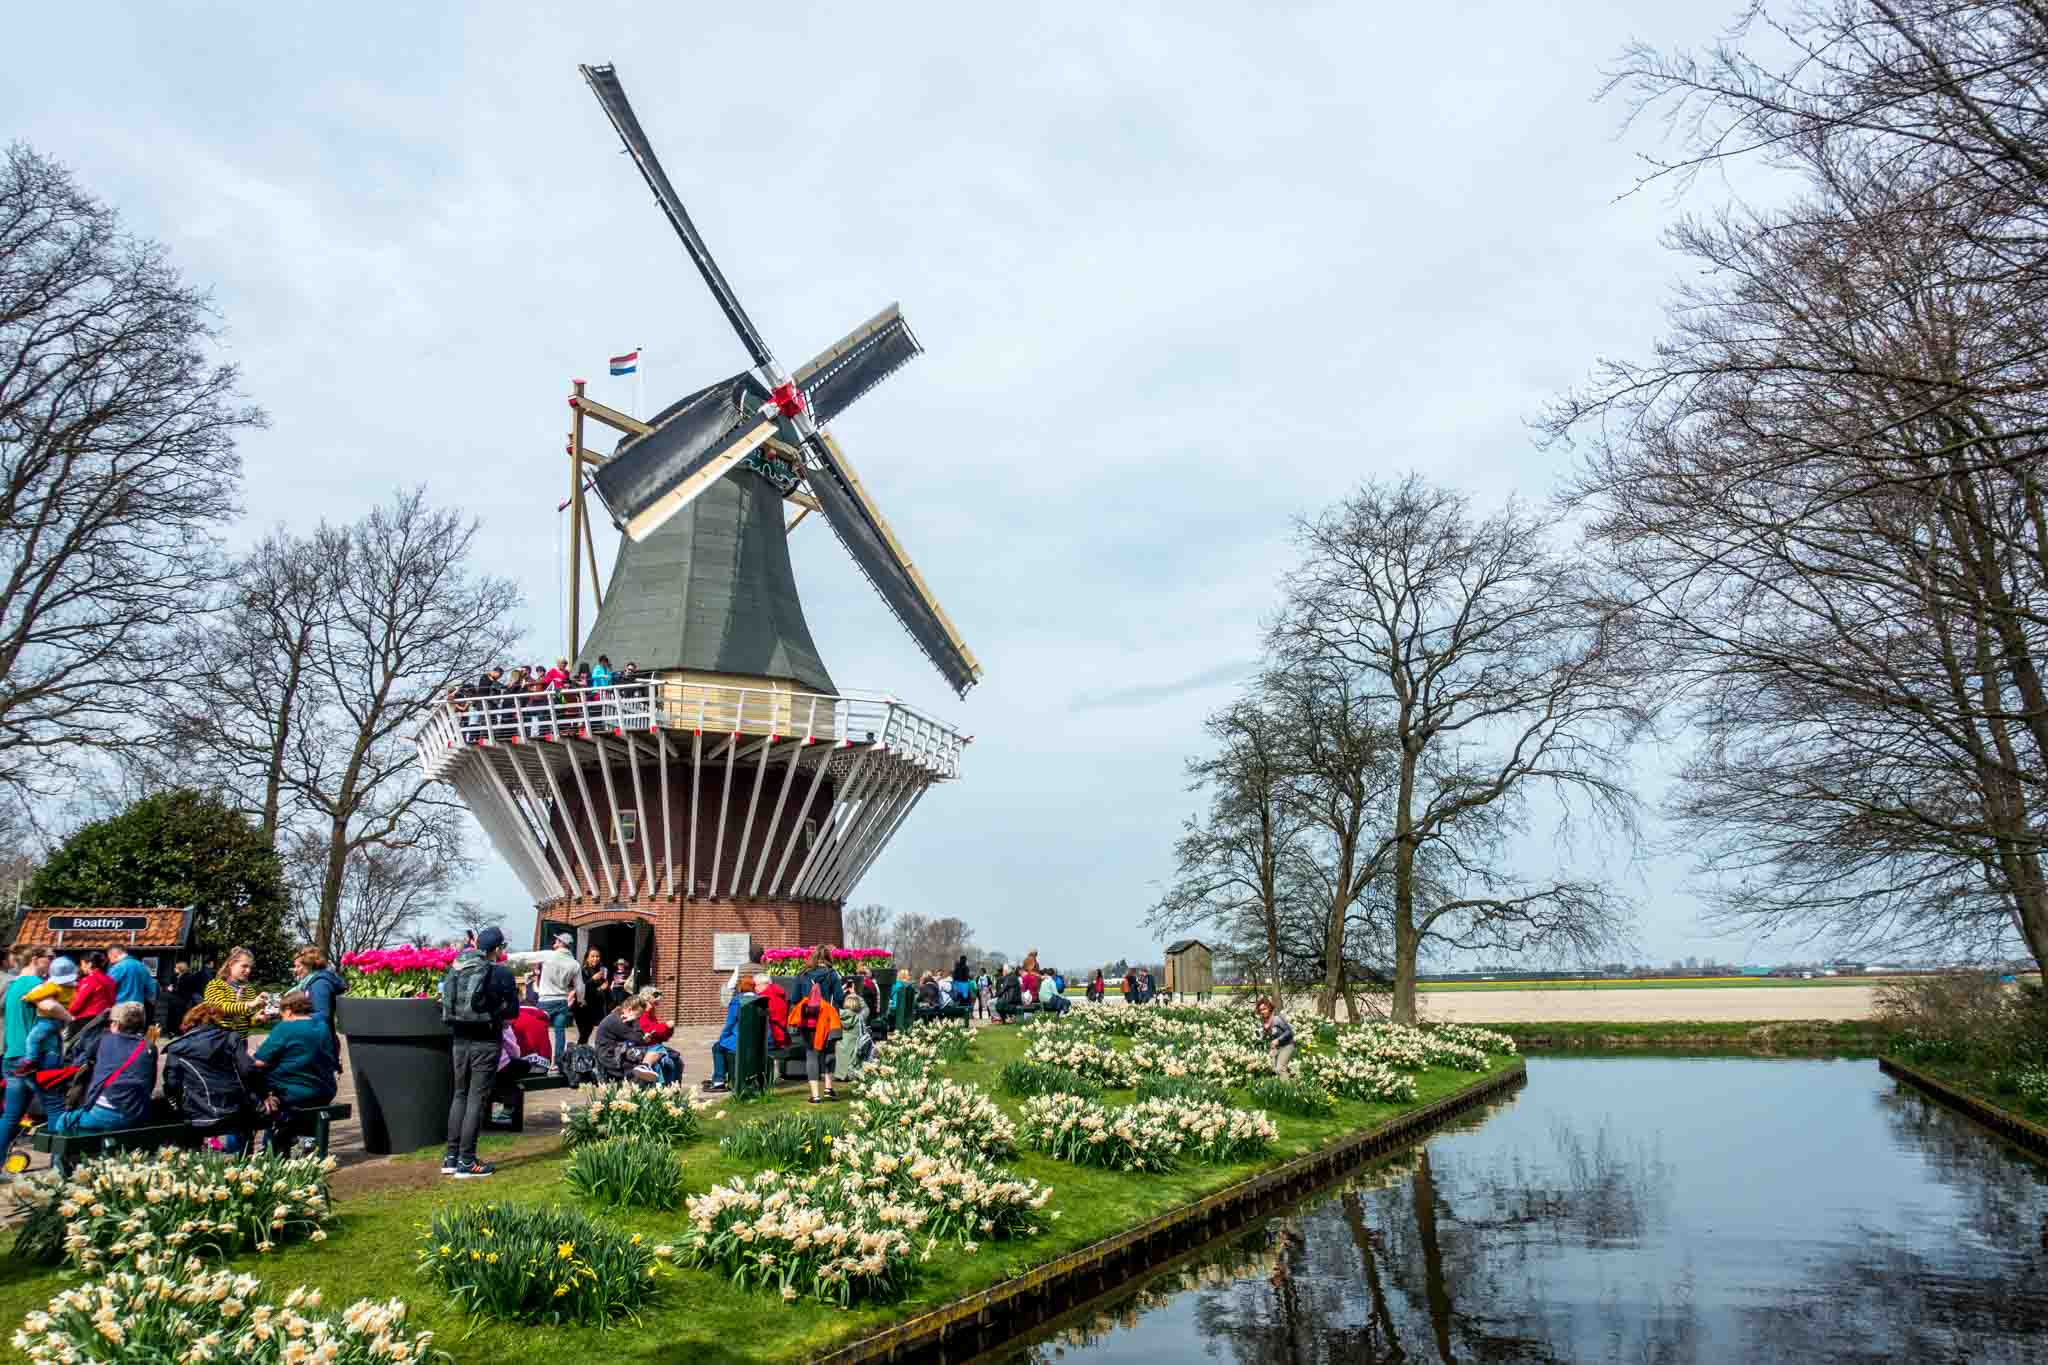 In Holland, Keukenhof gardens is one of the most beautiful places to see a windmill and view tulips